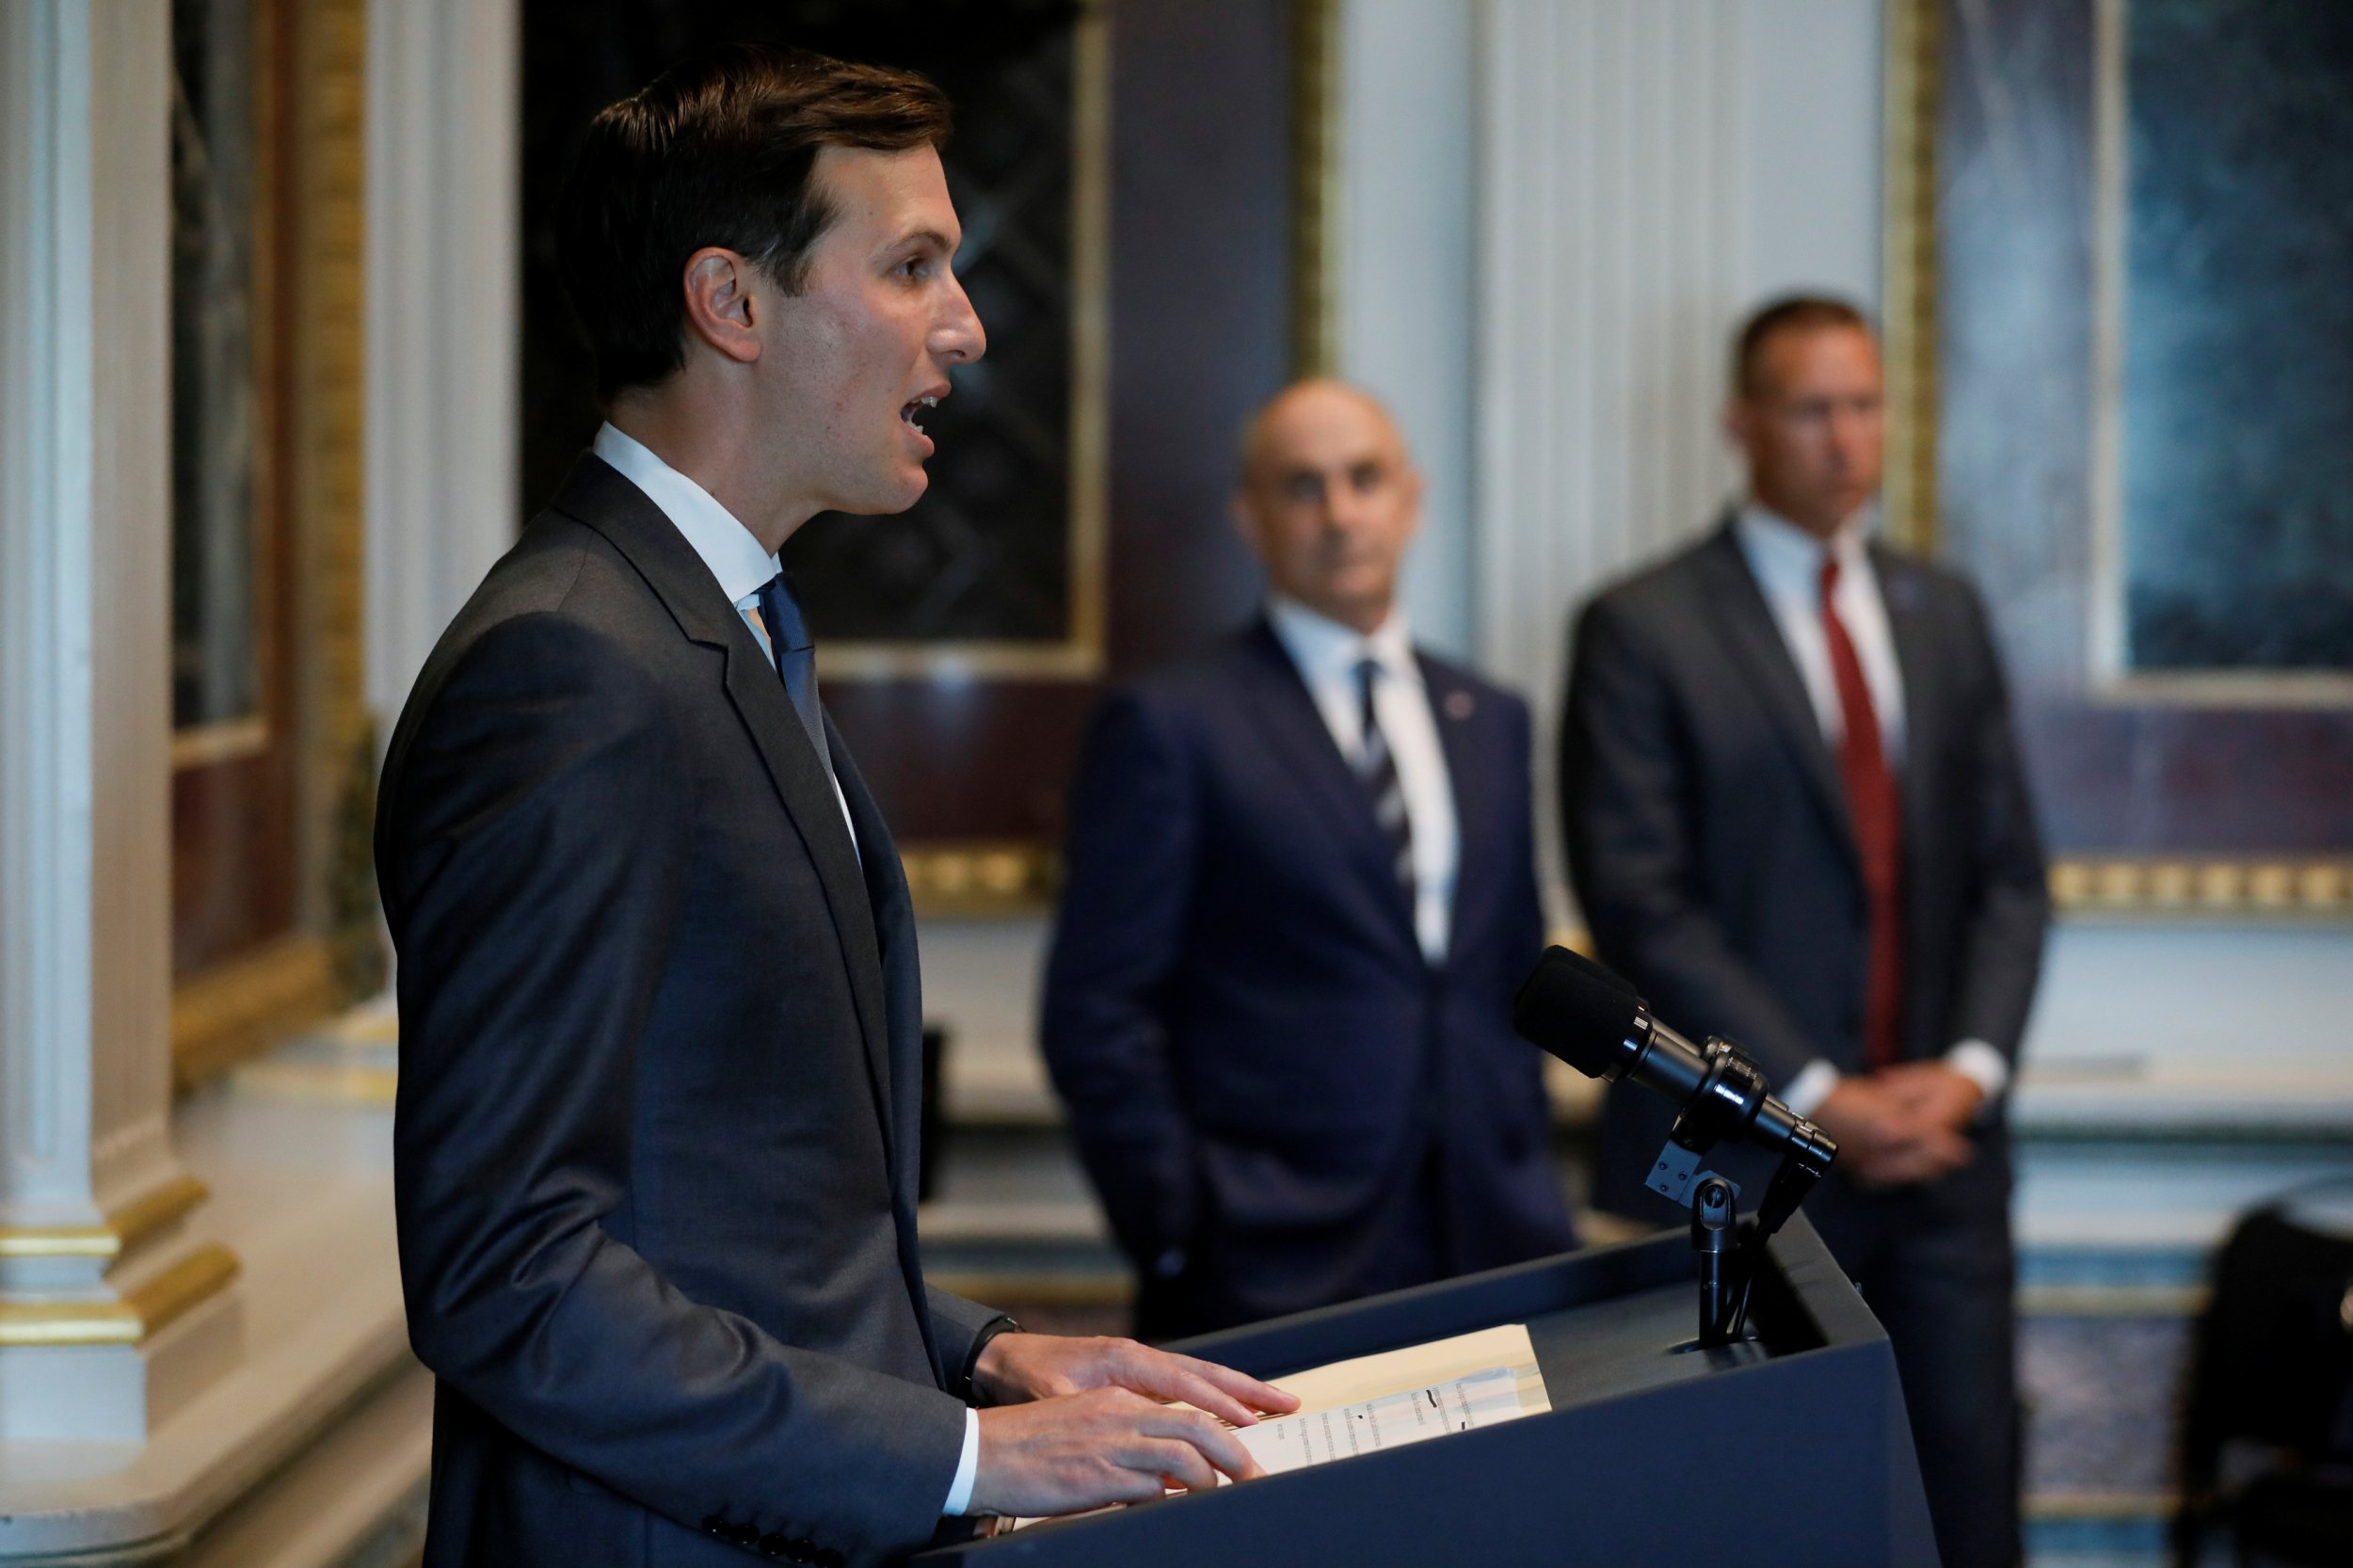 Jared Kushner actually speaks in public, and here's how his voice sounds